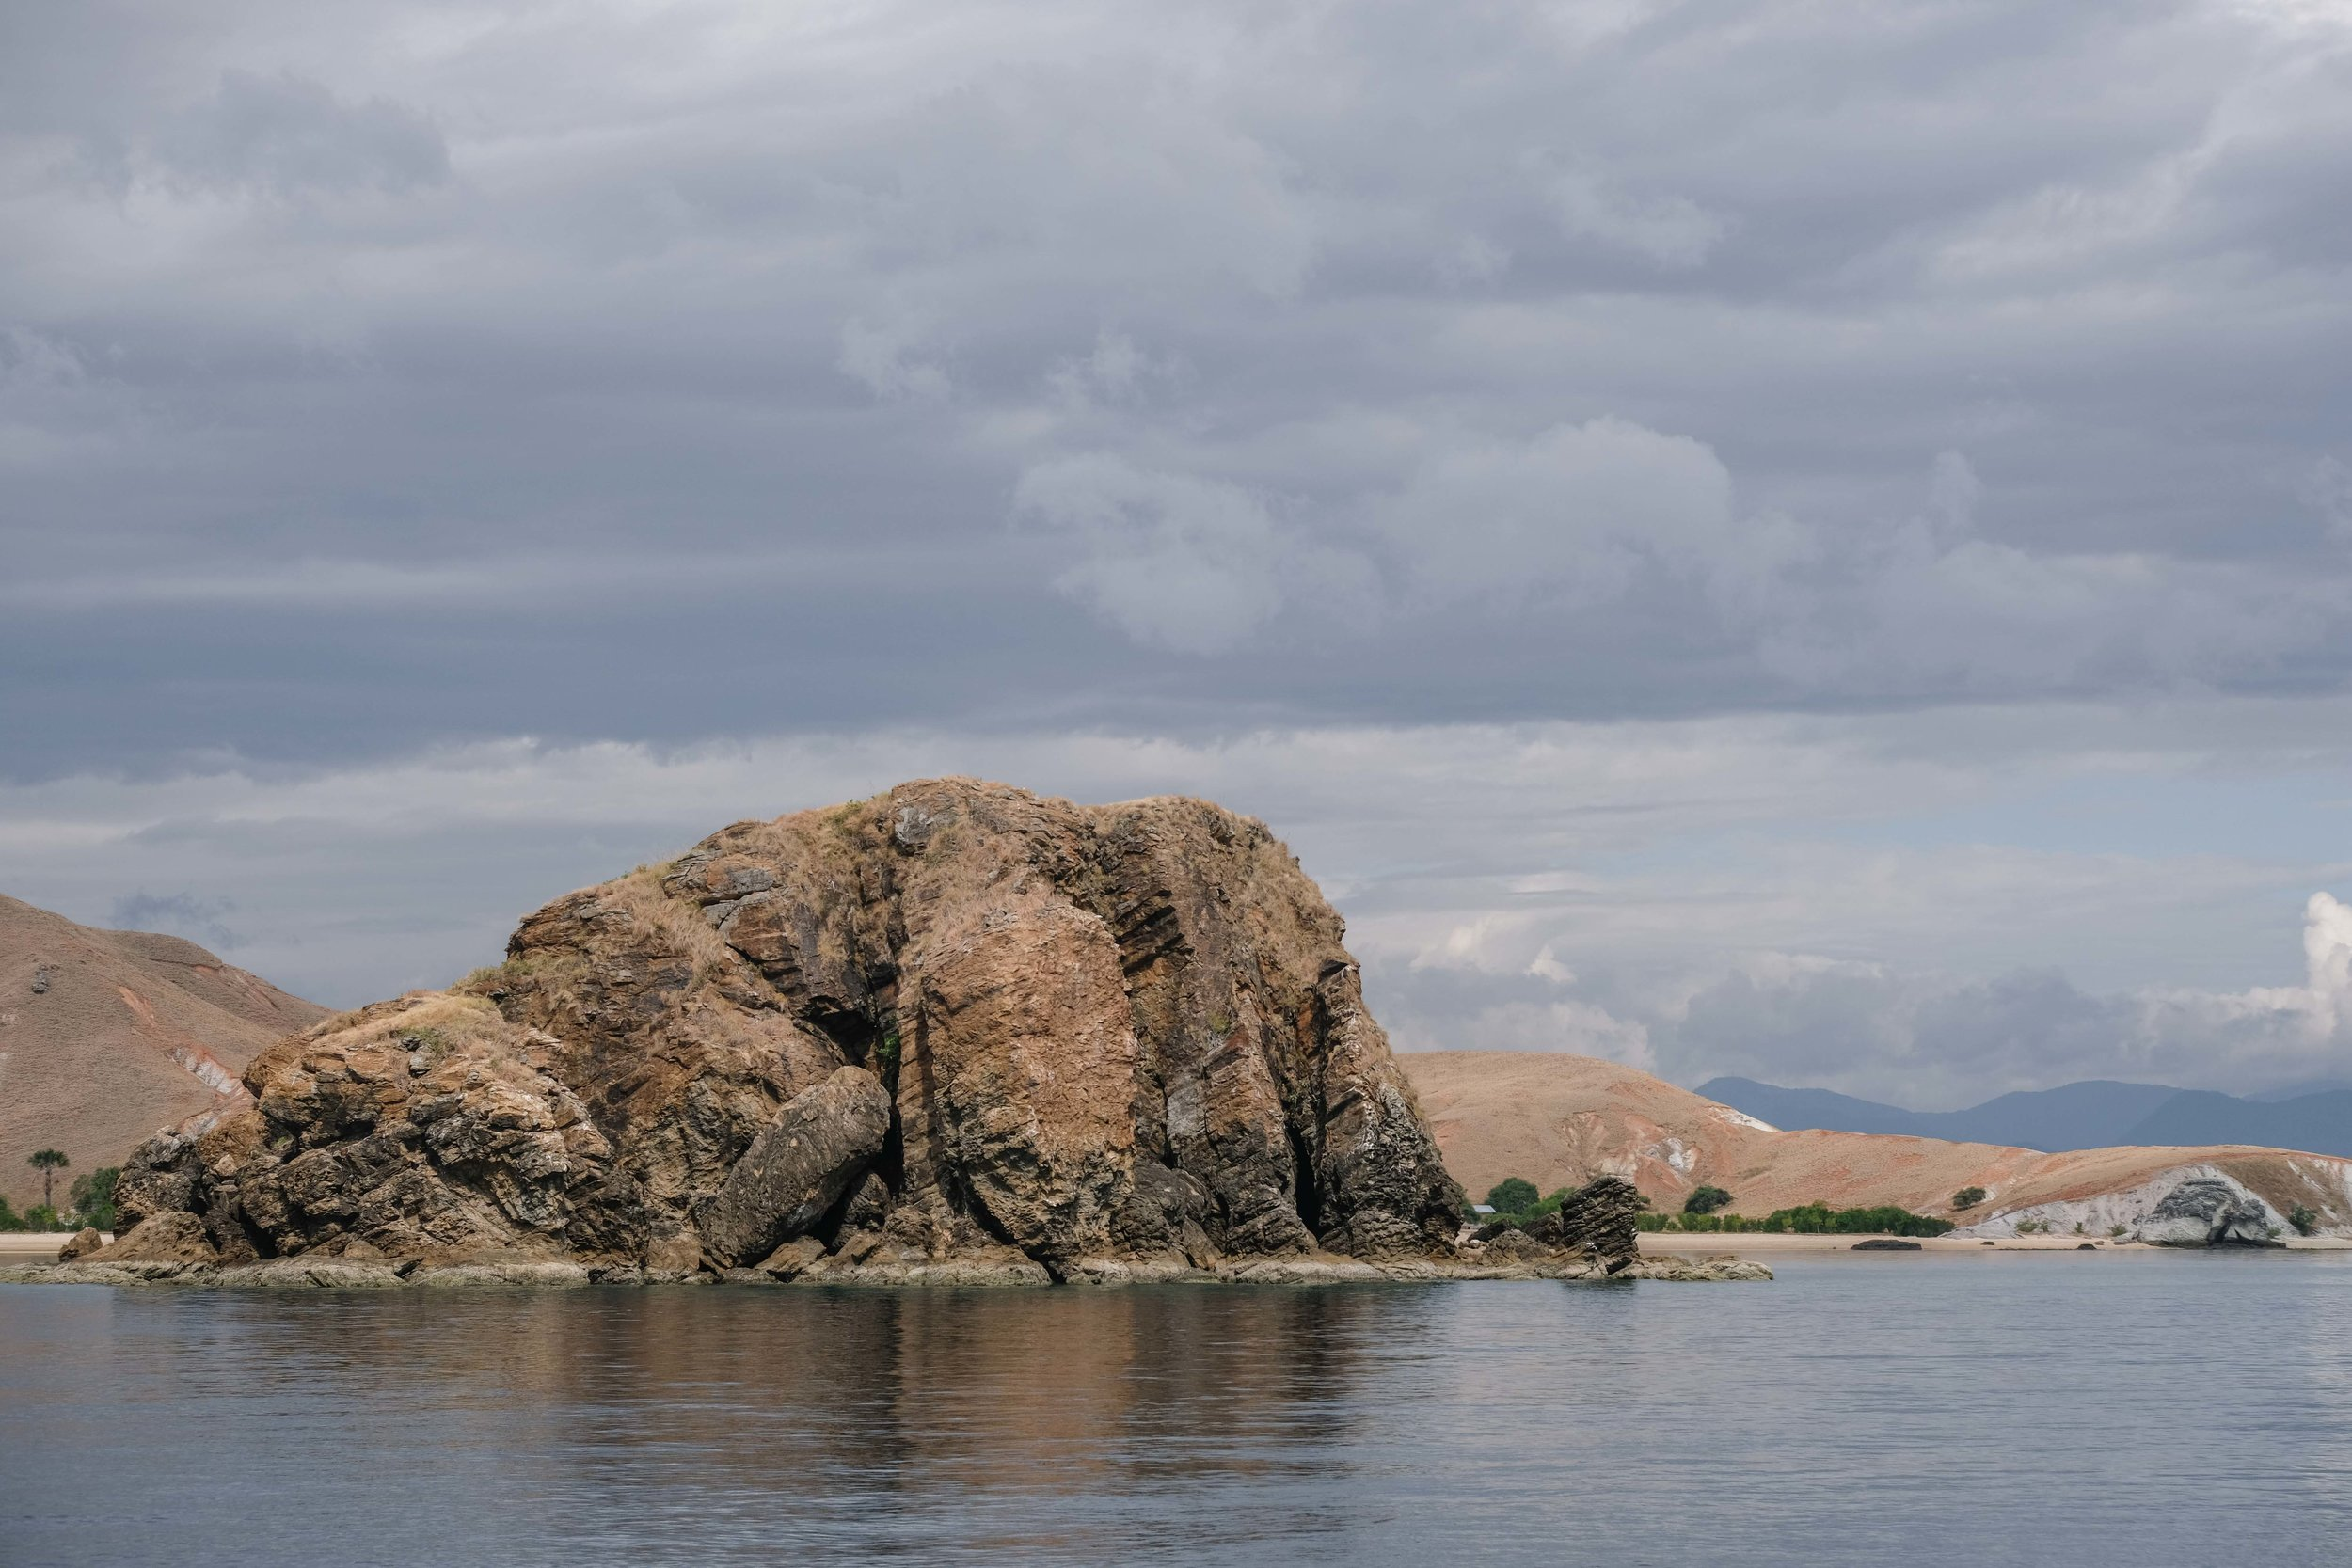 One of the many rocky outcrops and islands that dot the dry, yet devastatingly beautiful landscape of Komodo National Park